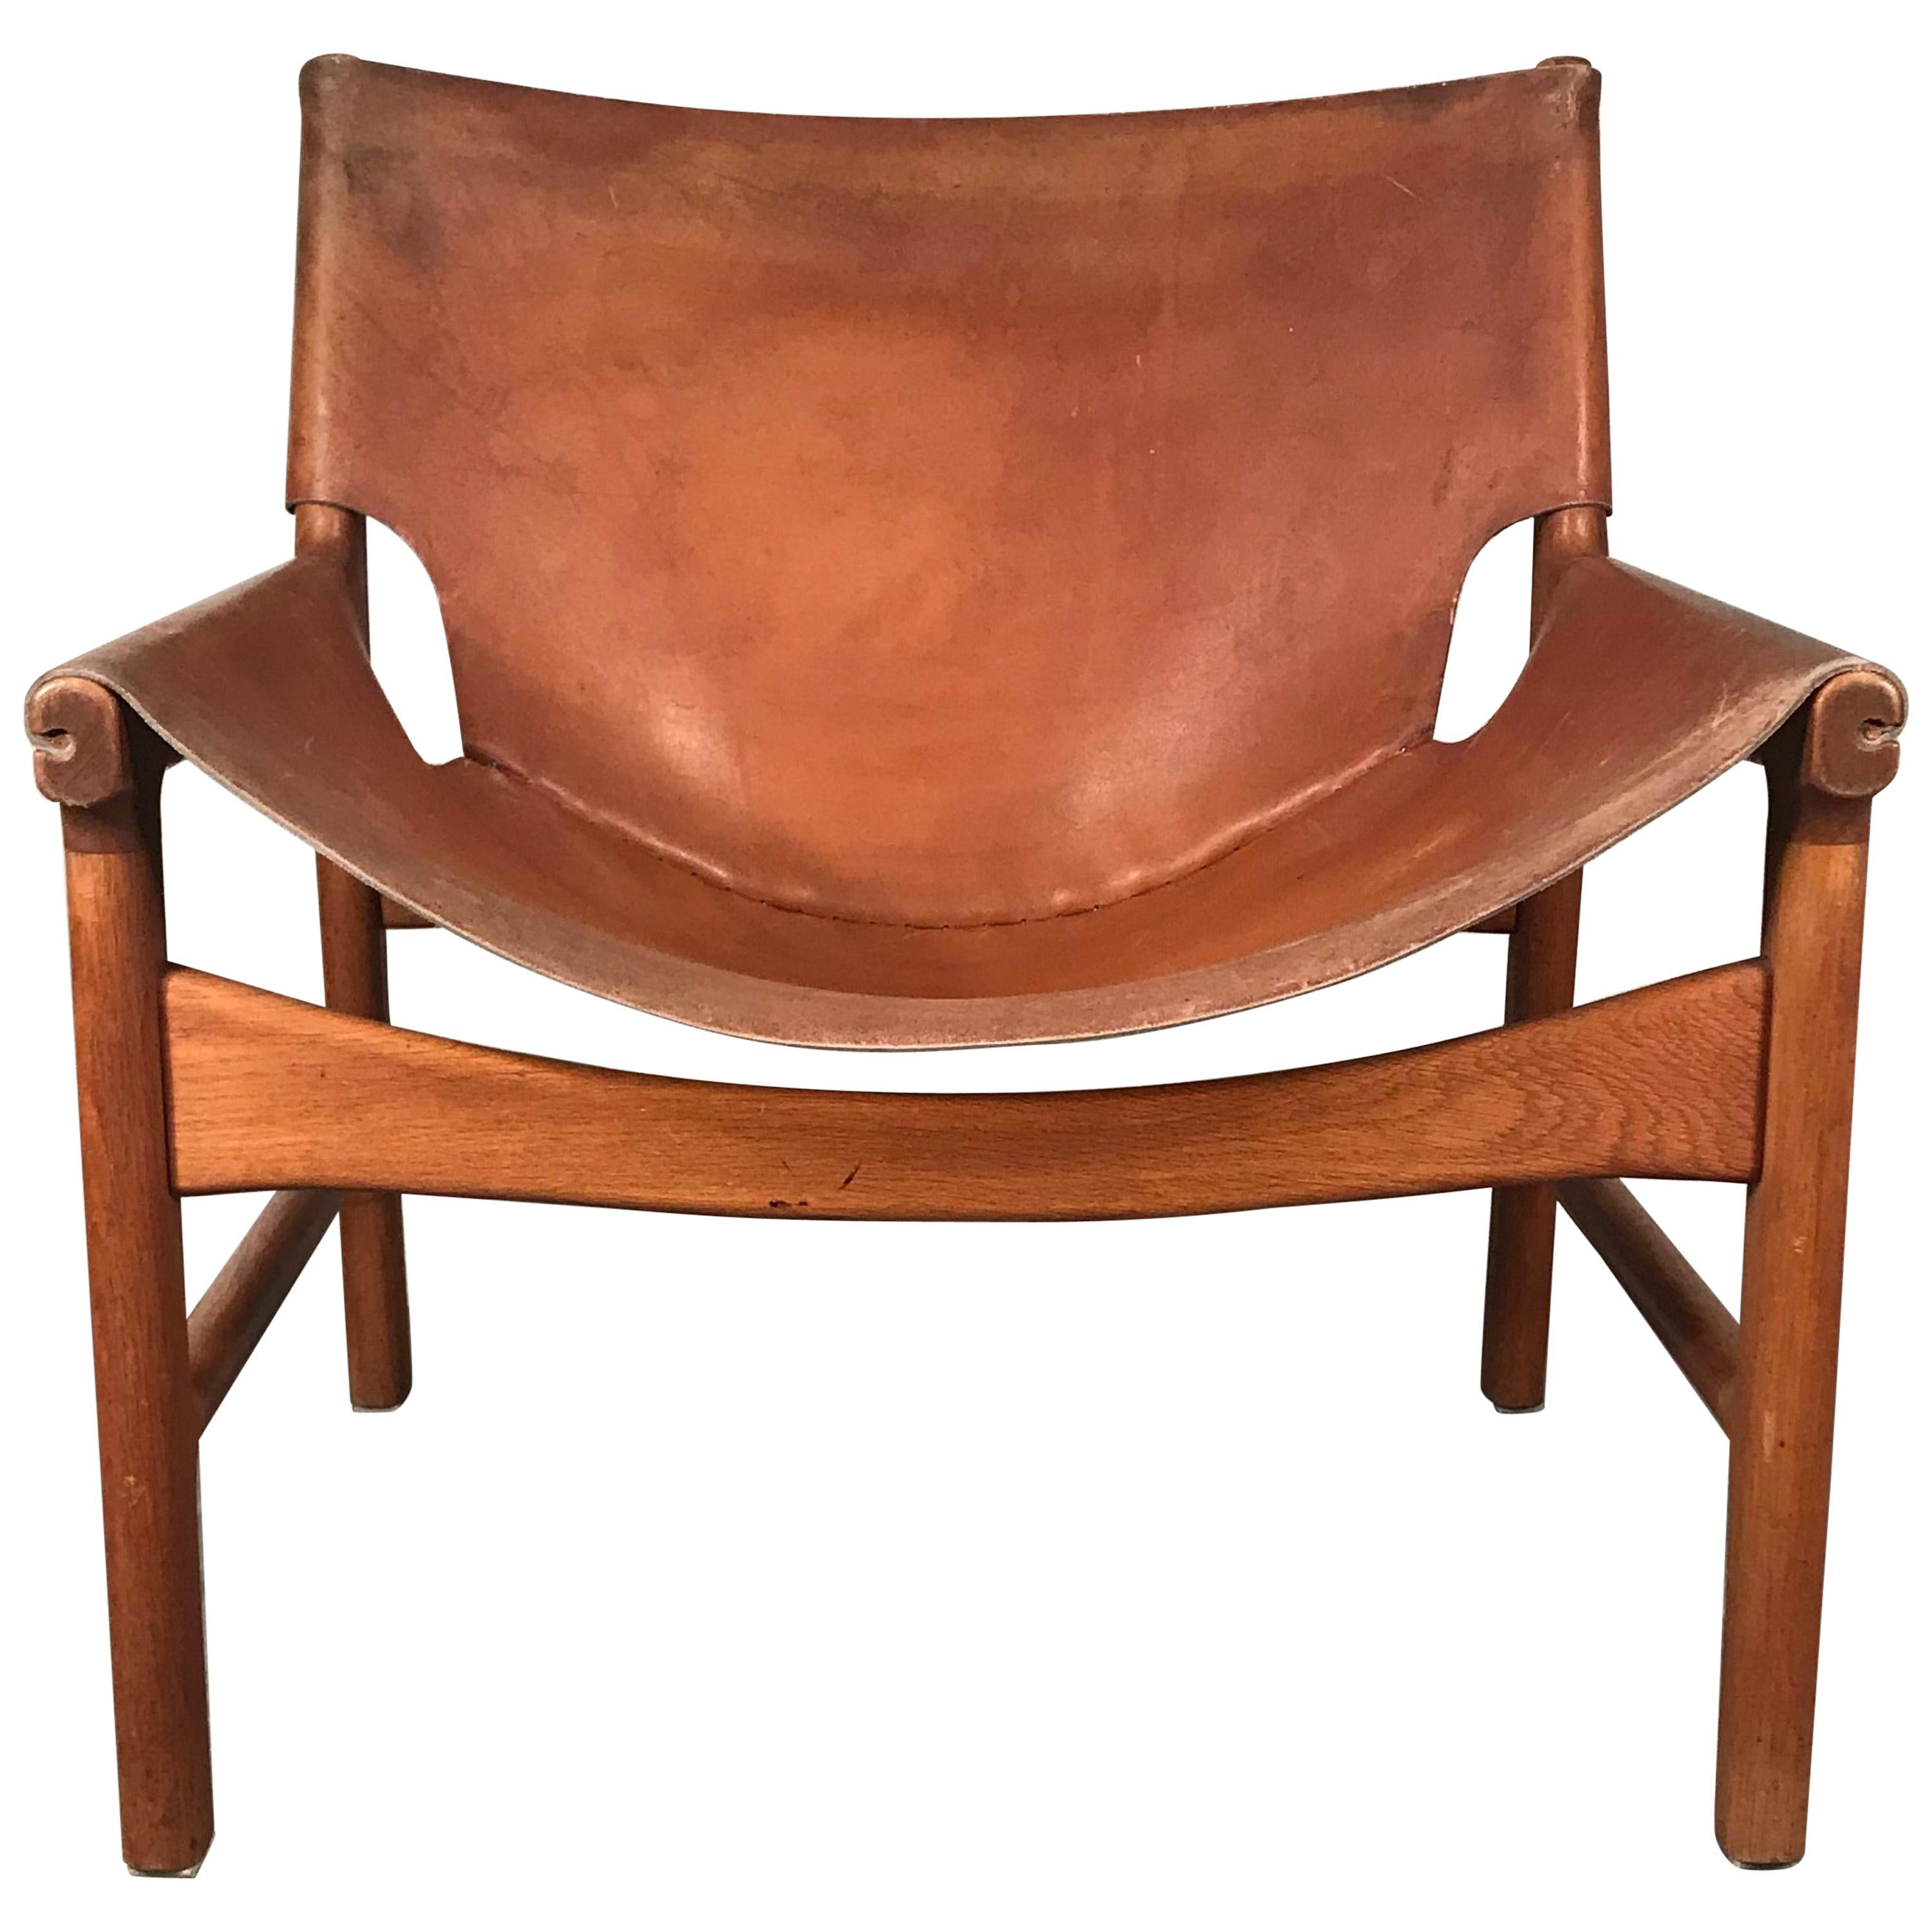 Midcentury Leather Swing Chair by Illum Wikkelso, Denmark, 1950s